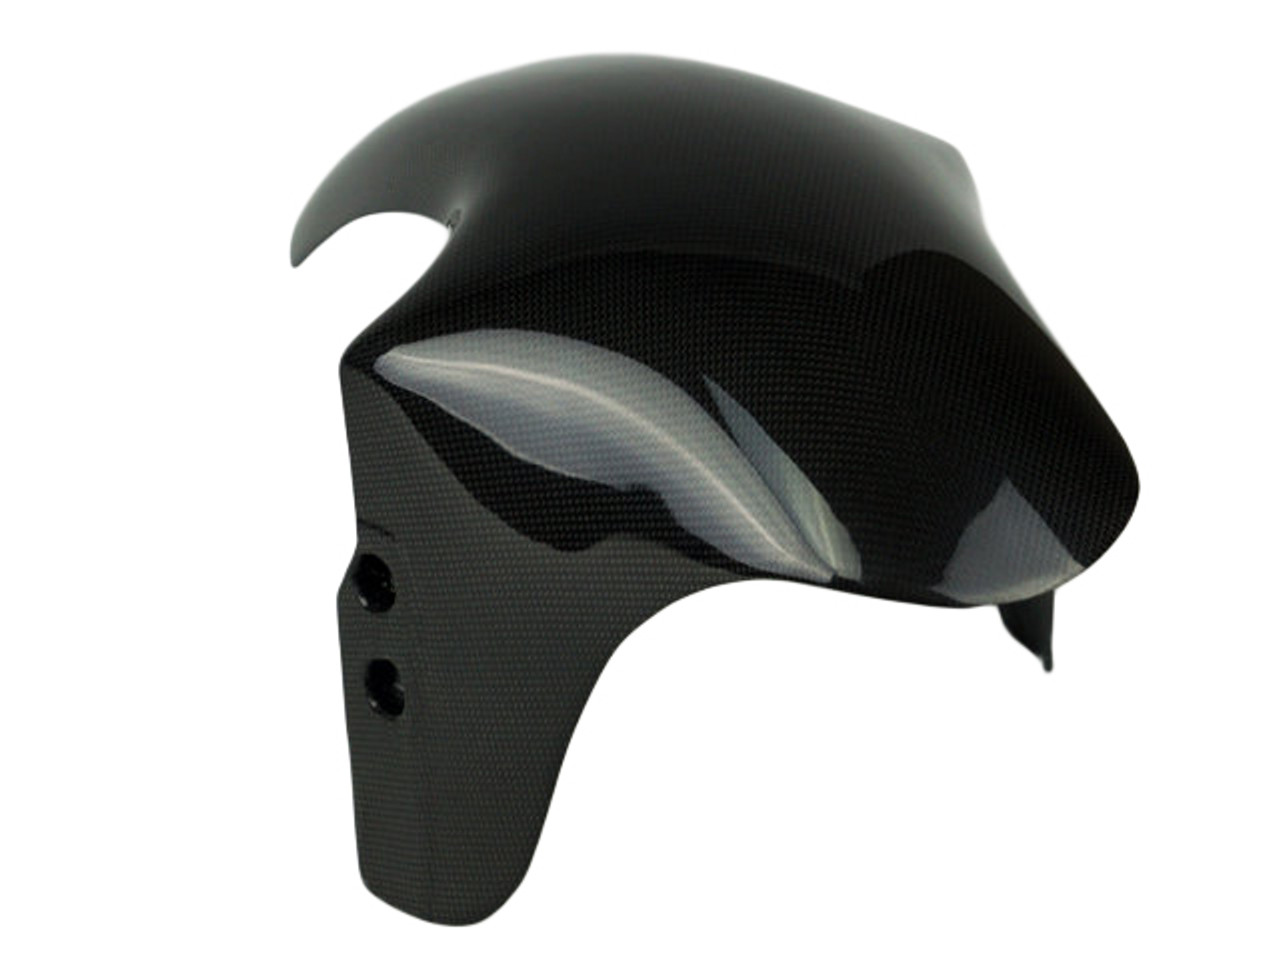 Front Fender in Plain Glossy Weave Carbon Fiber for Ducati 888, 851, 1000SS, 900SS, 800SS, 750SS, 600SS